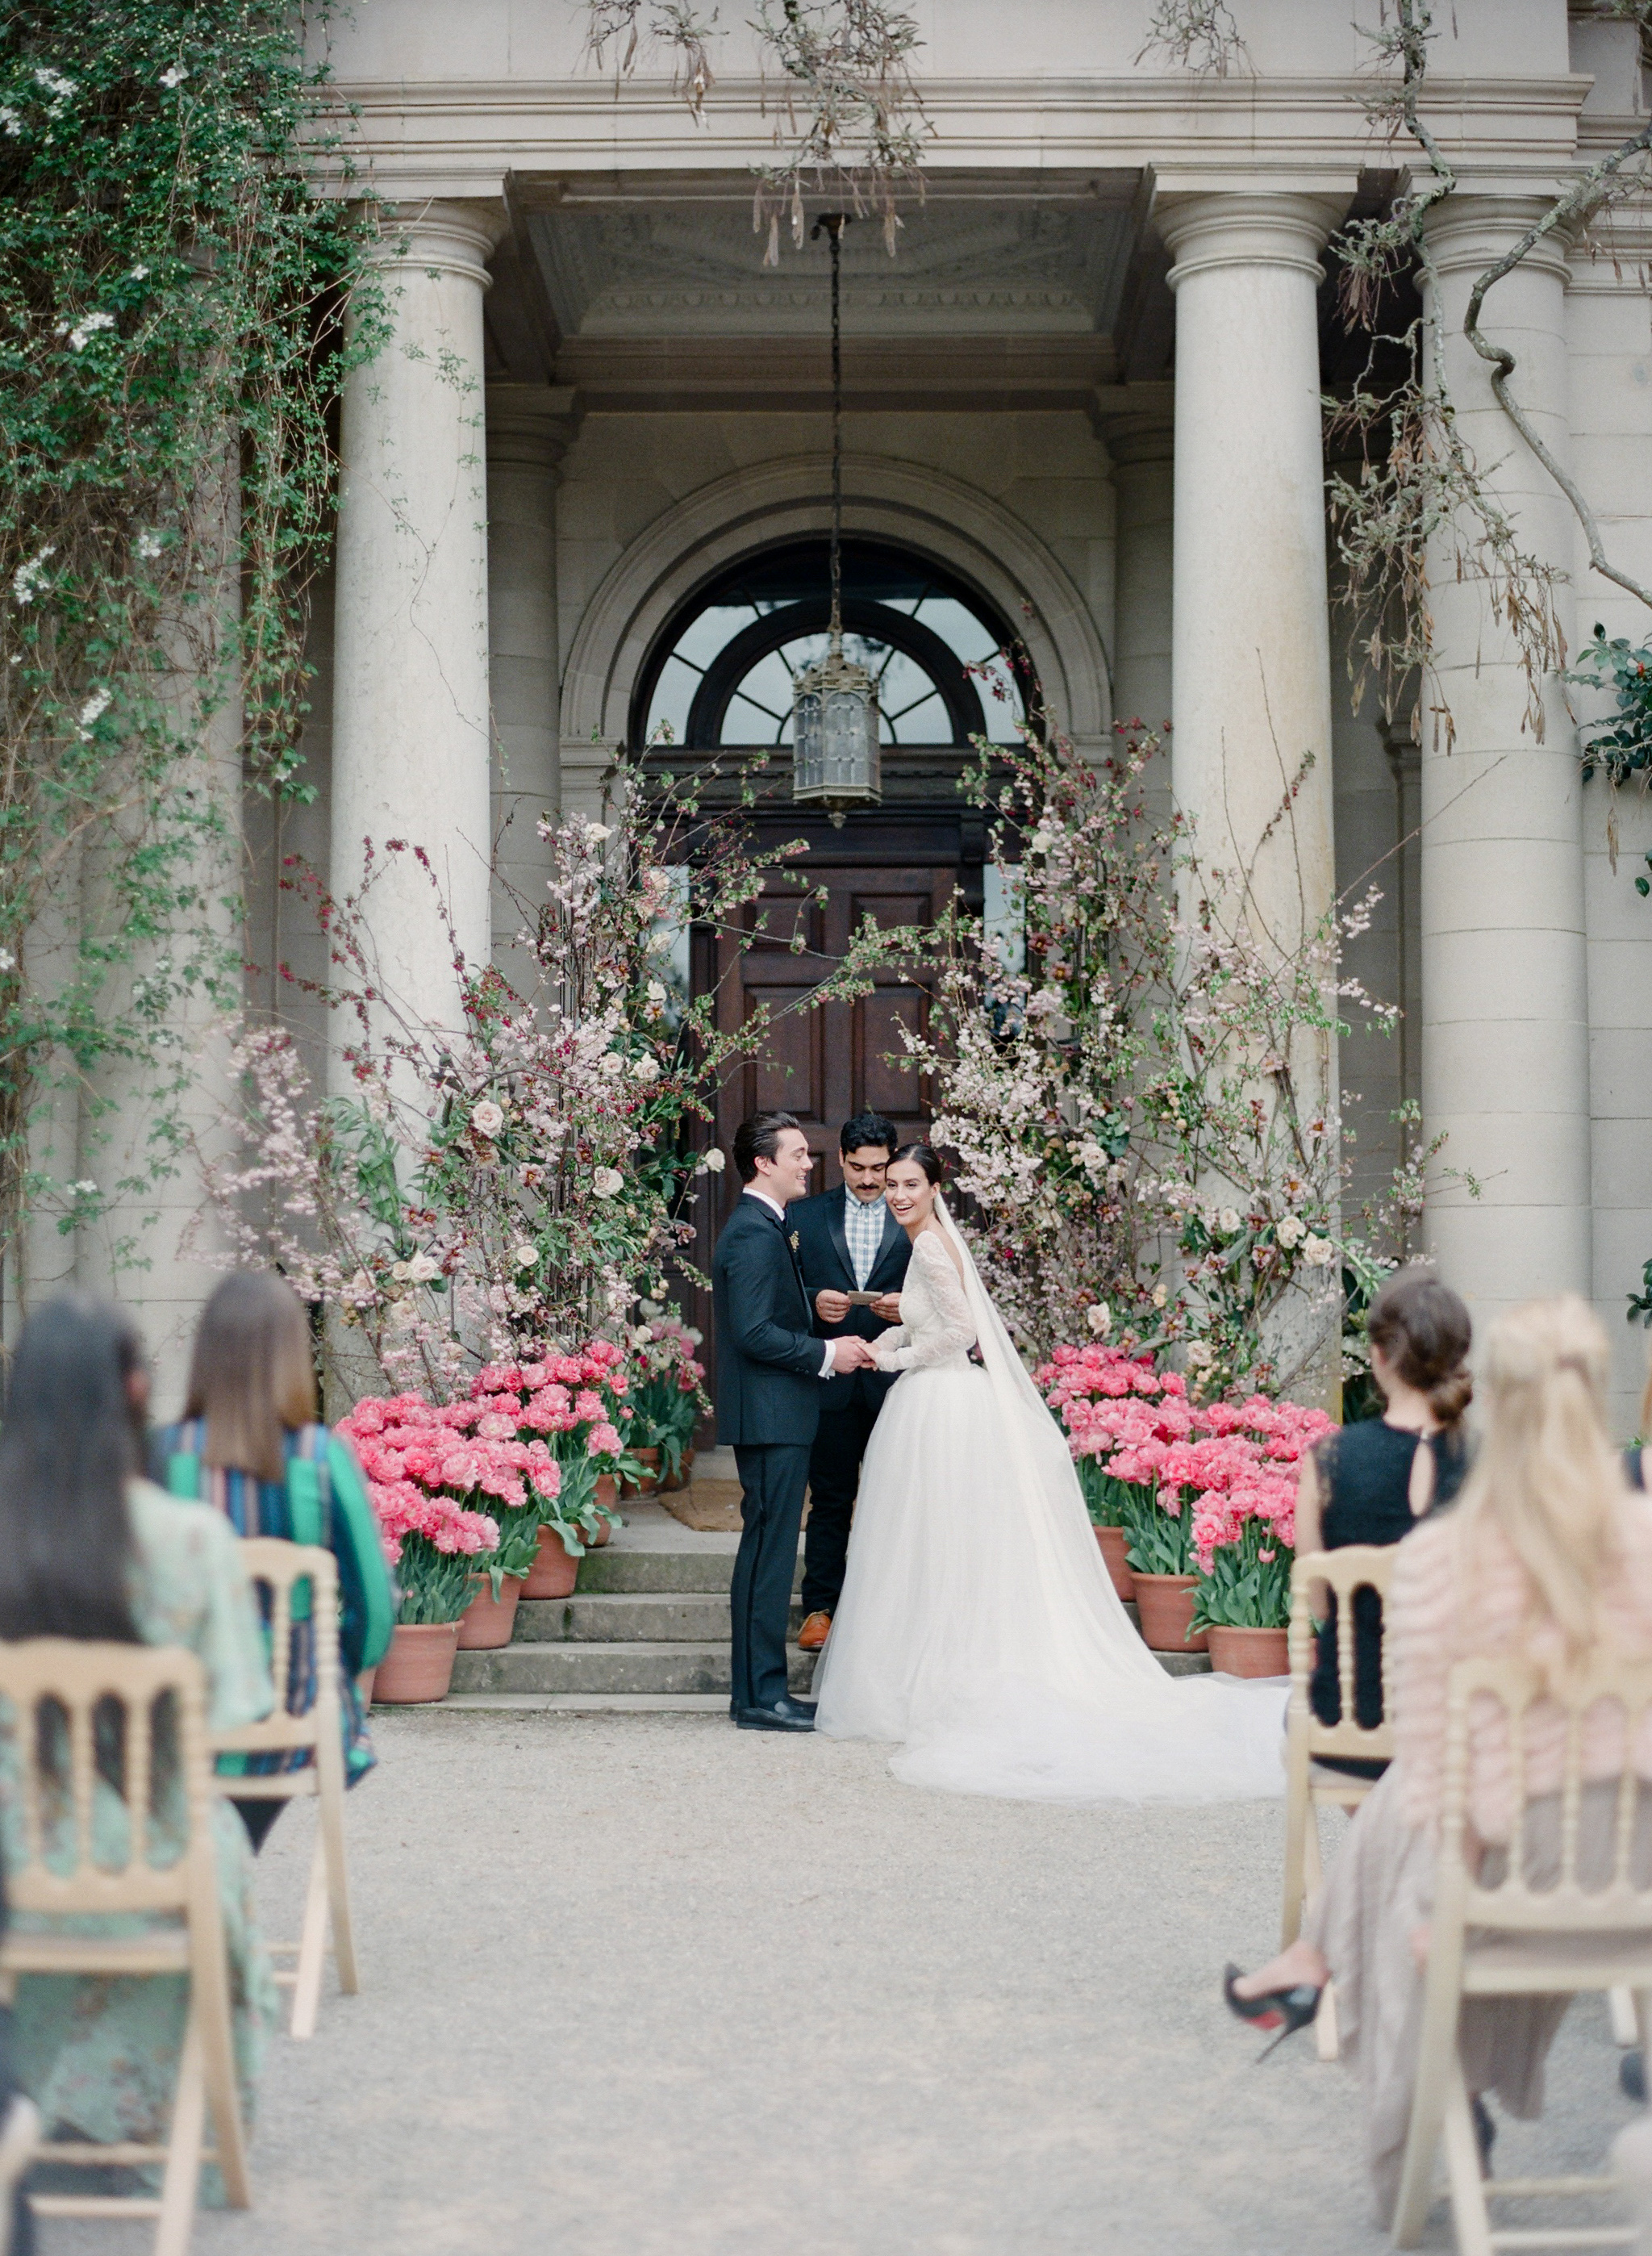 Filoli | Filoli Garden | Wedding | Amanda Crean Photography | Bustle Events | Vera Wang